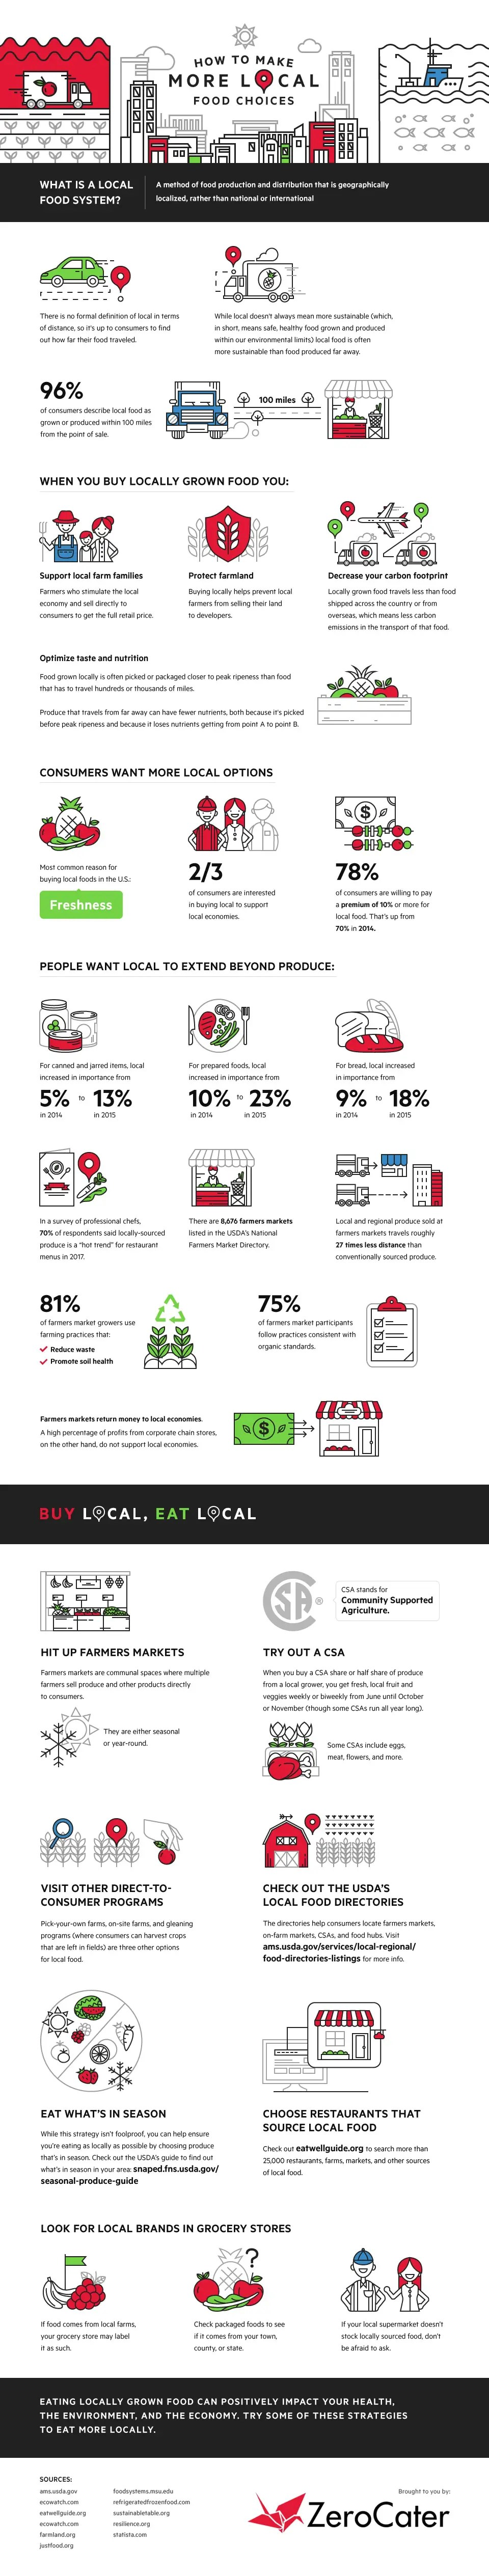 How to Make More Local Food Choices 1